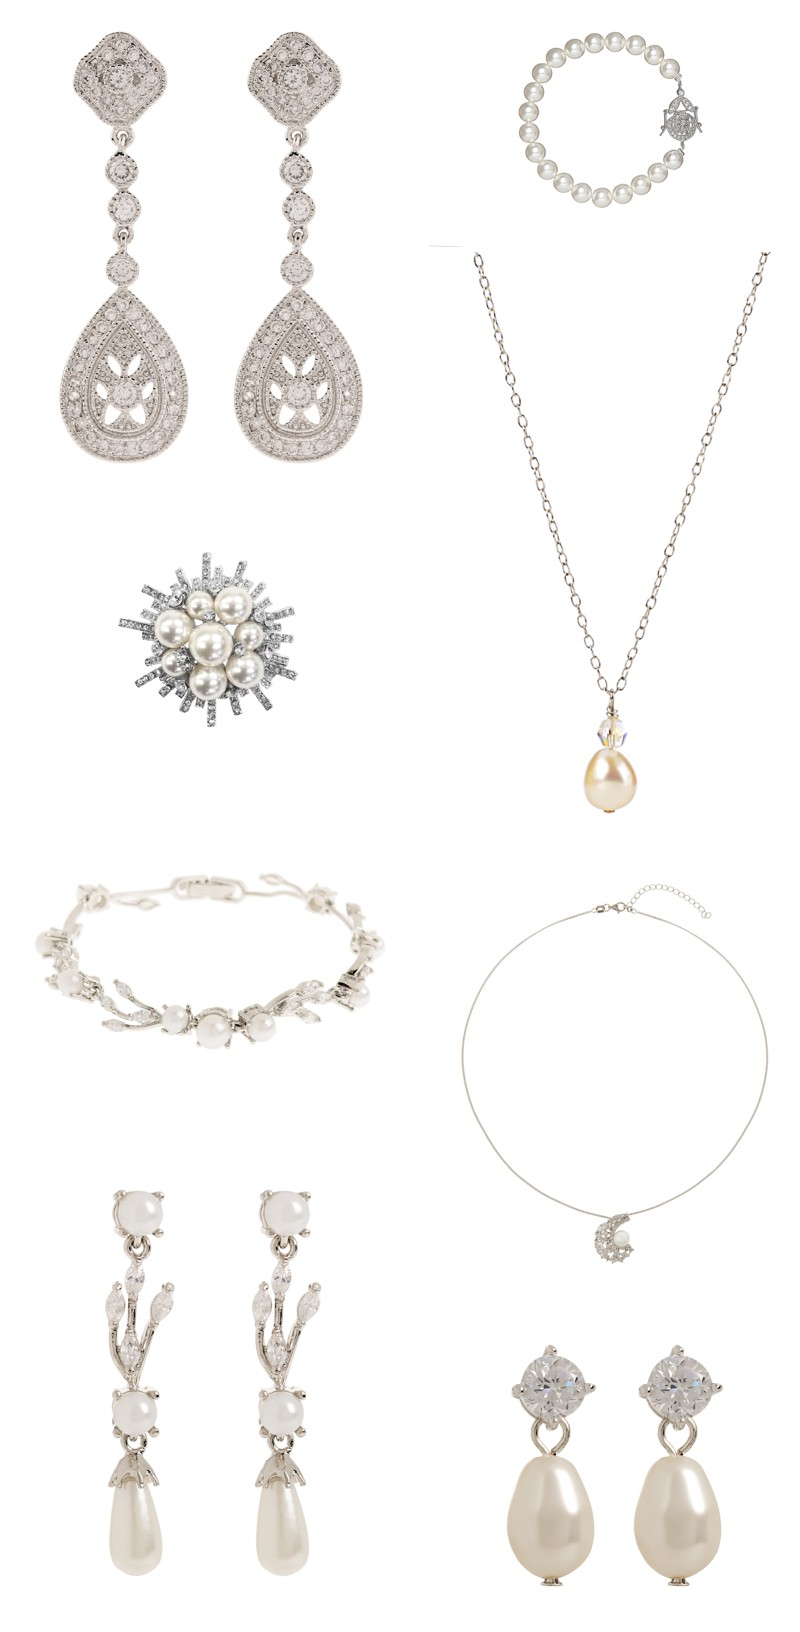 Win A £200 Shopping Spree To Spend On Bridesmaids' Jewellery From Liberty In Love!_0001